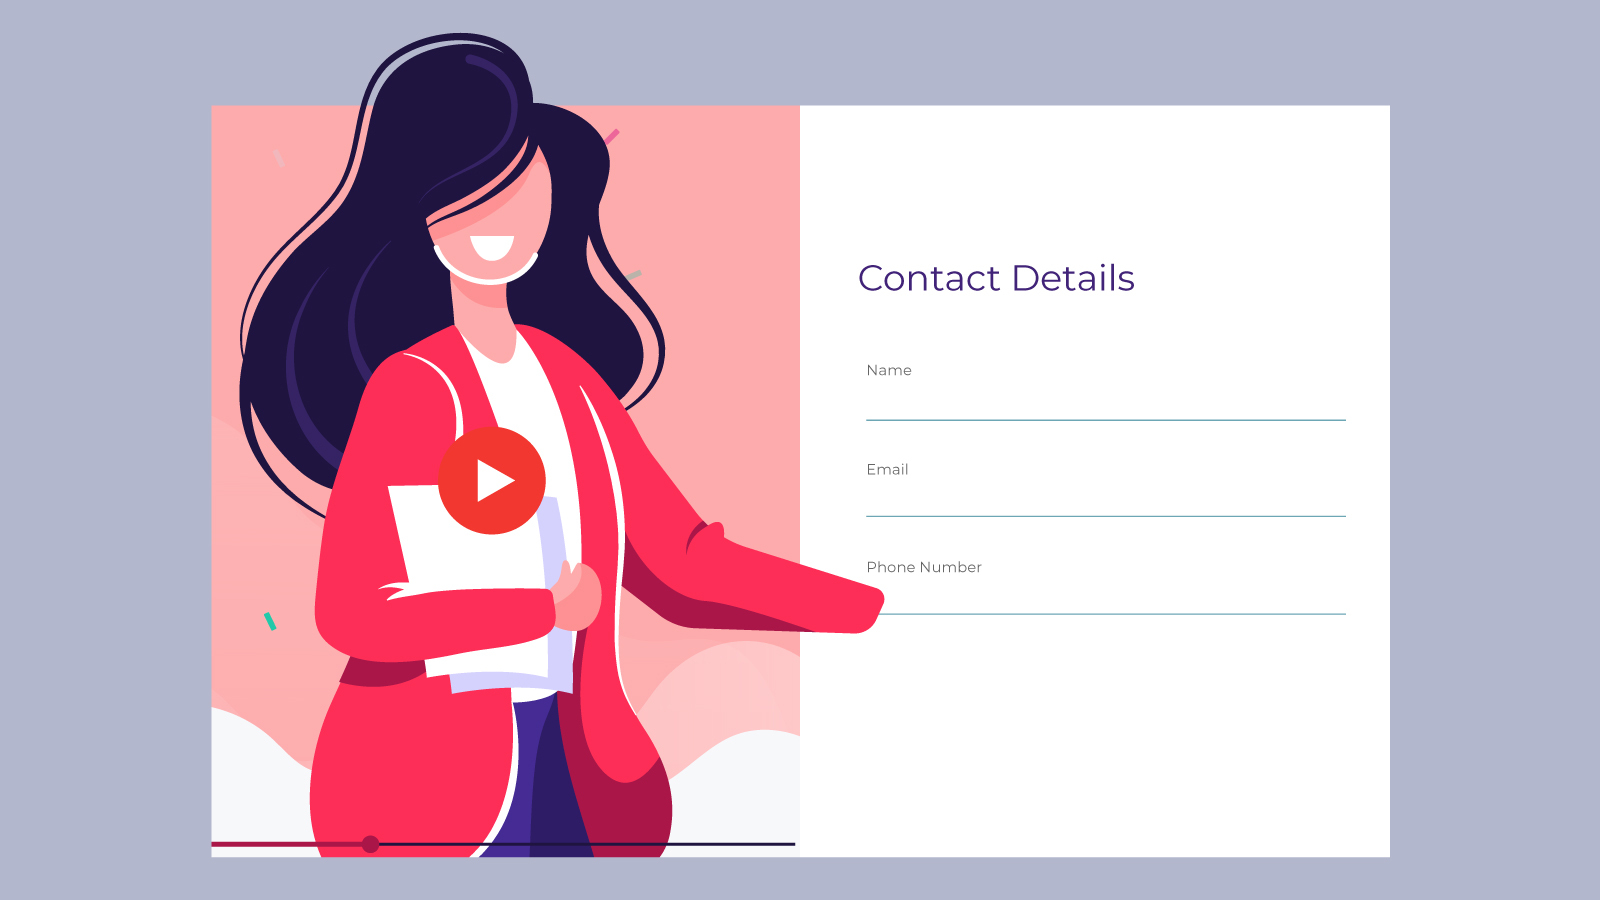 6 Reasons To Use Video Content In Contact Forms